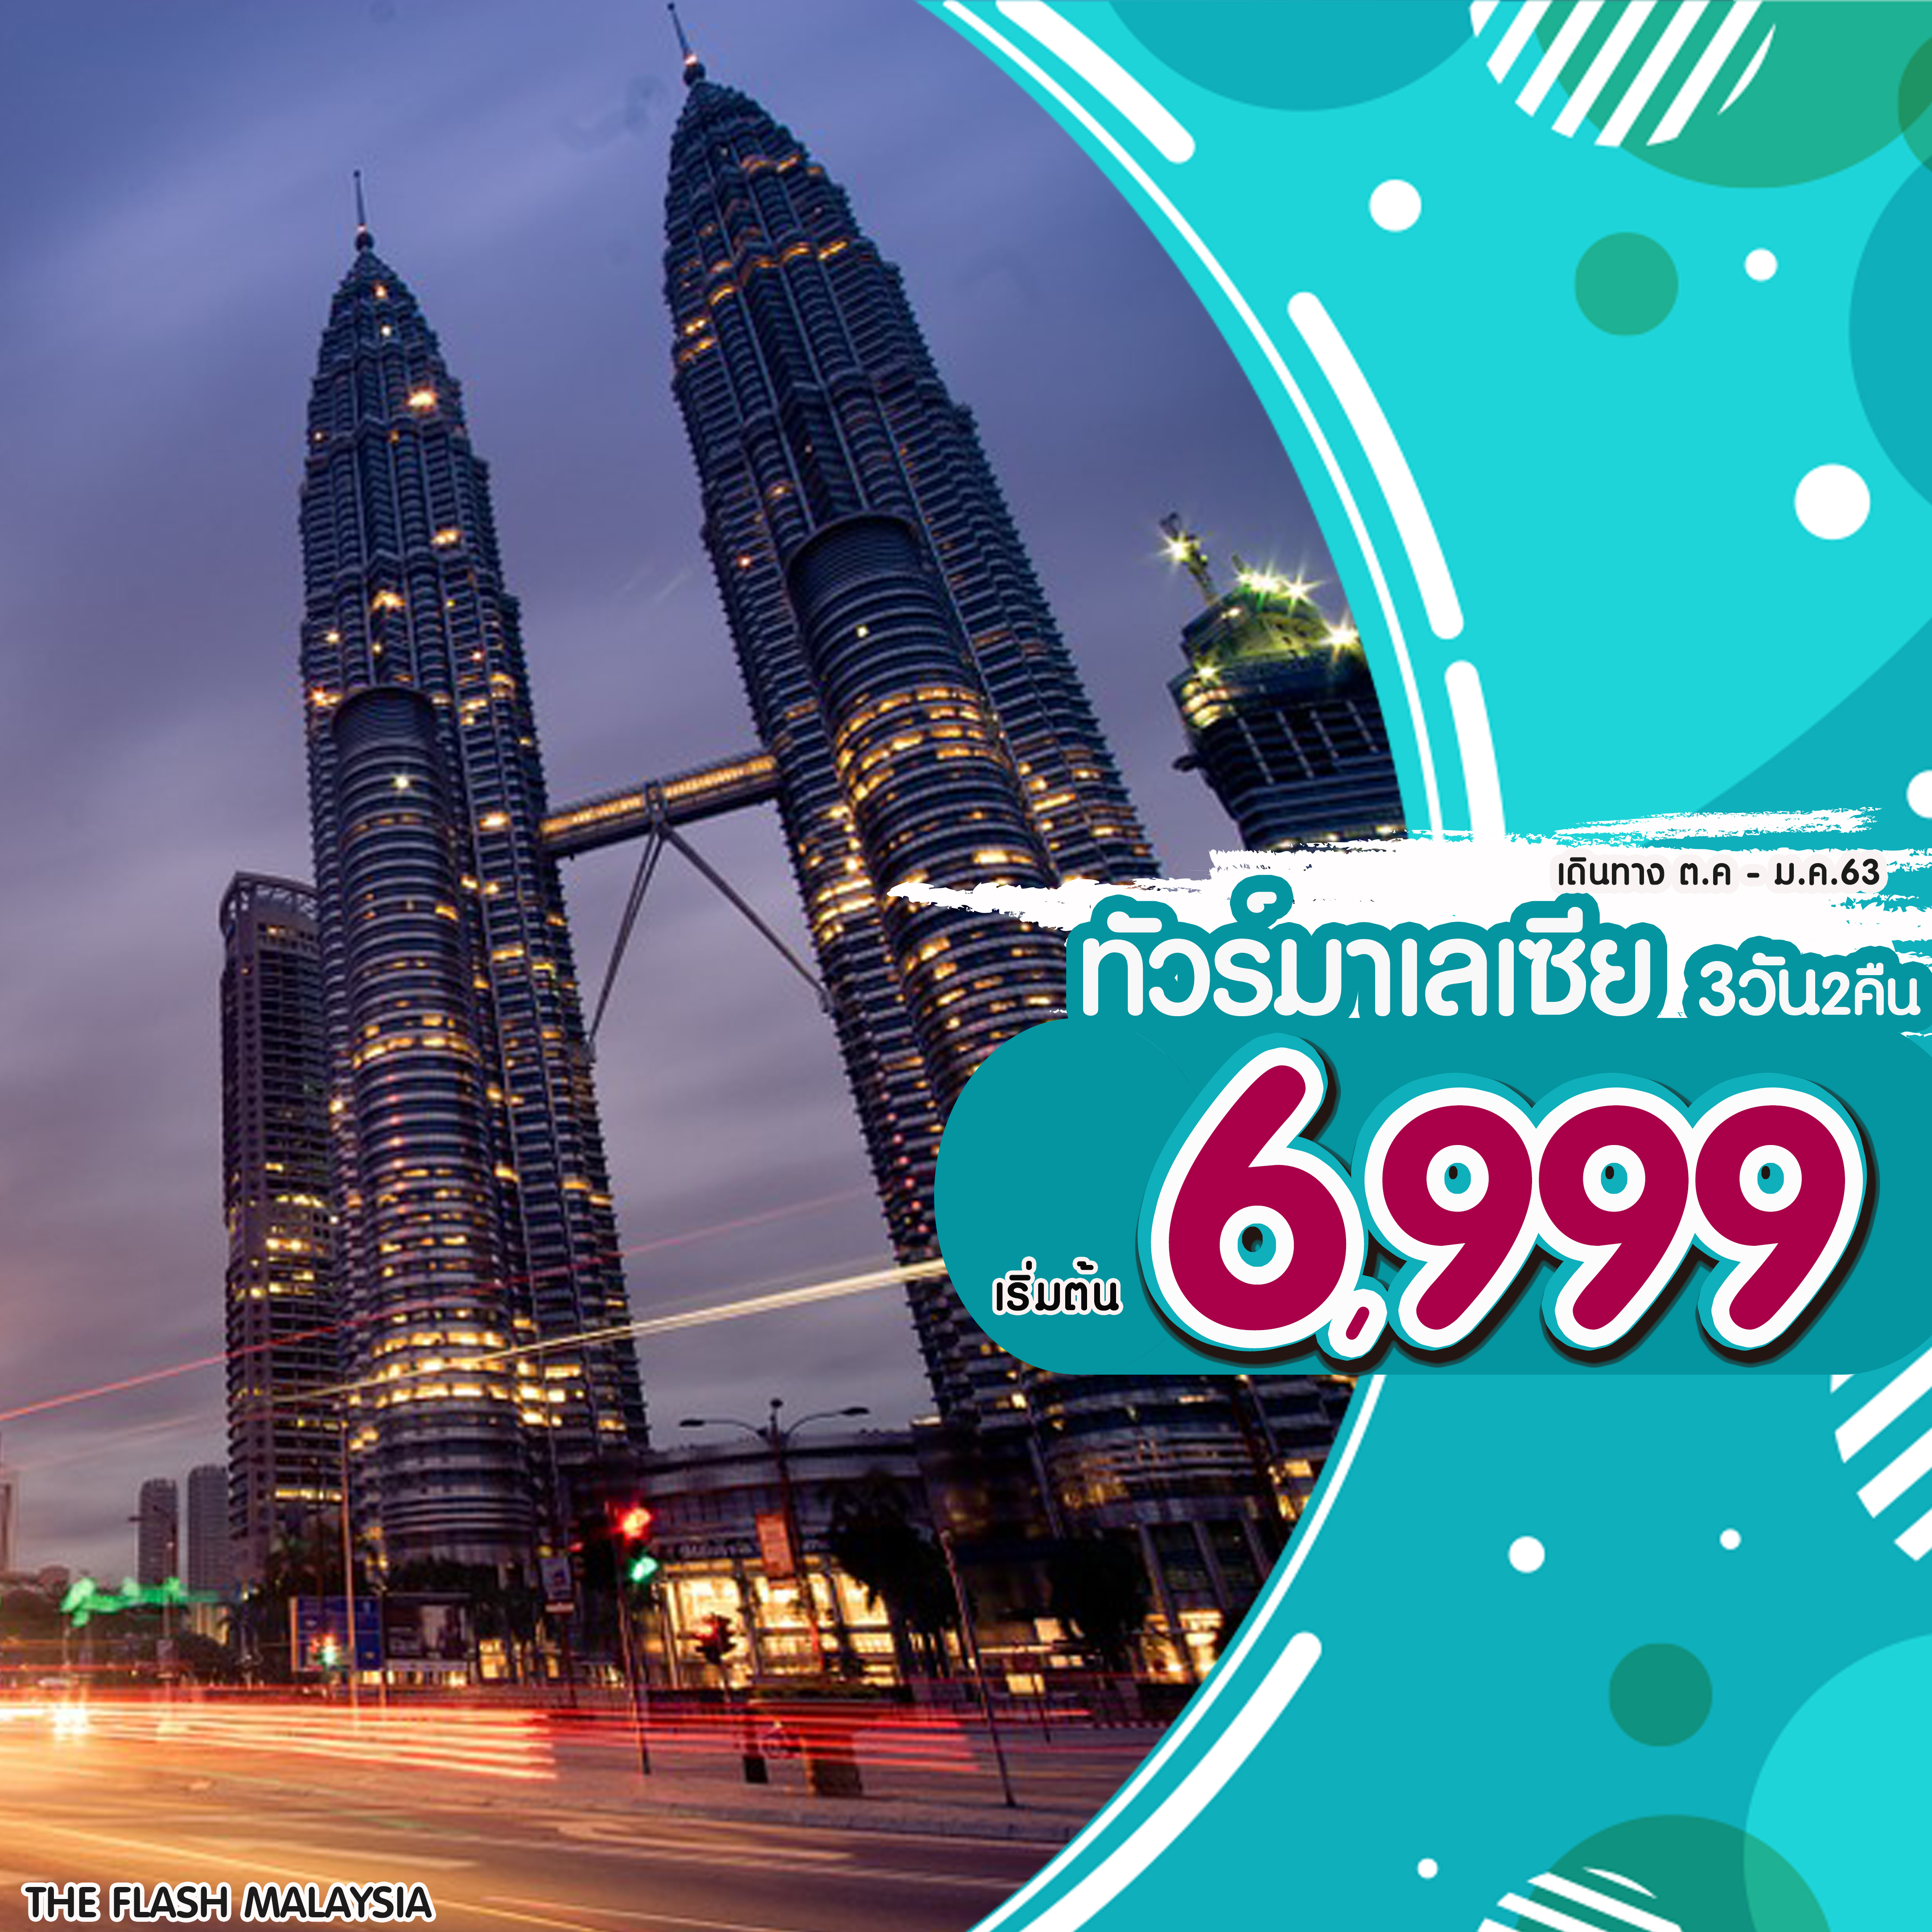 THE FLASH MALAYSIA 3D2N by (MH) JUL- NEW YEAR 2020 start 6999 เก็บทิปสนามบิน 1500